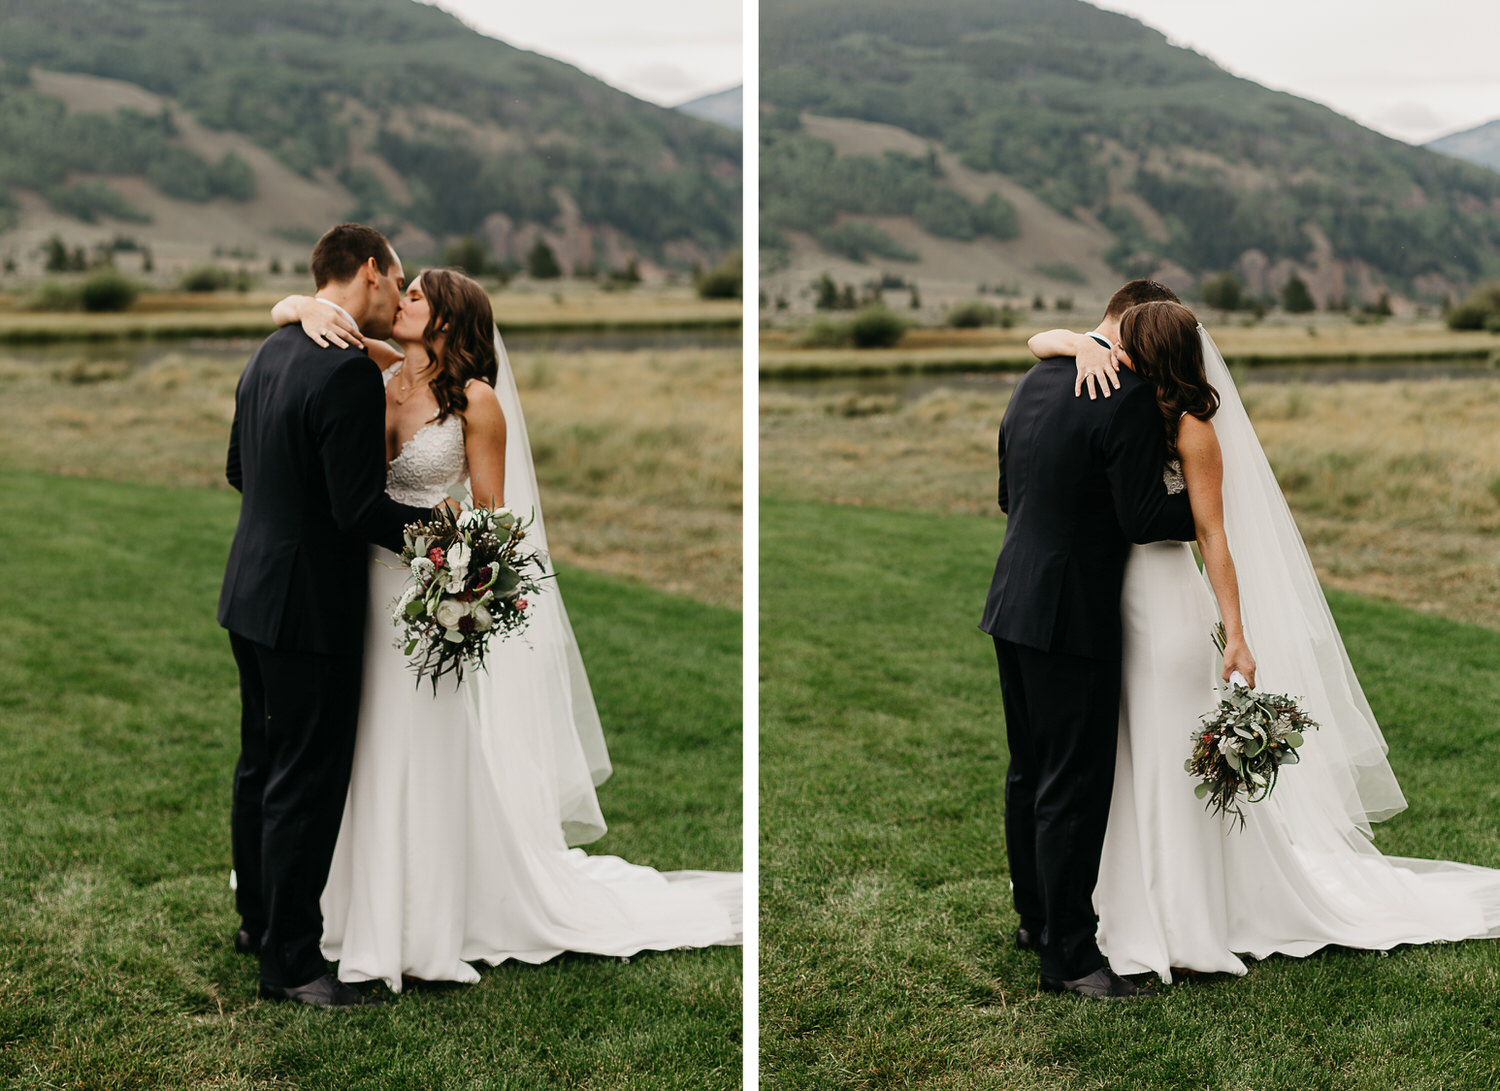 Camp Hale Wedding Colorado Wedding Photographer 6.jpg